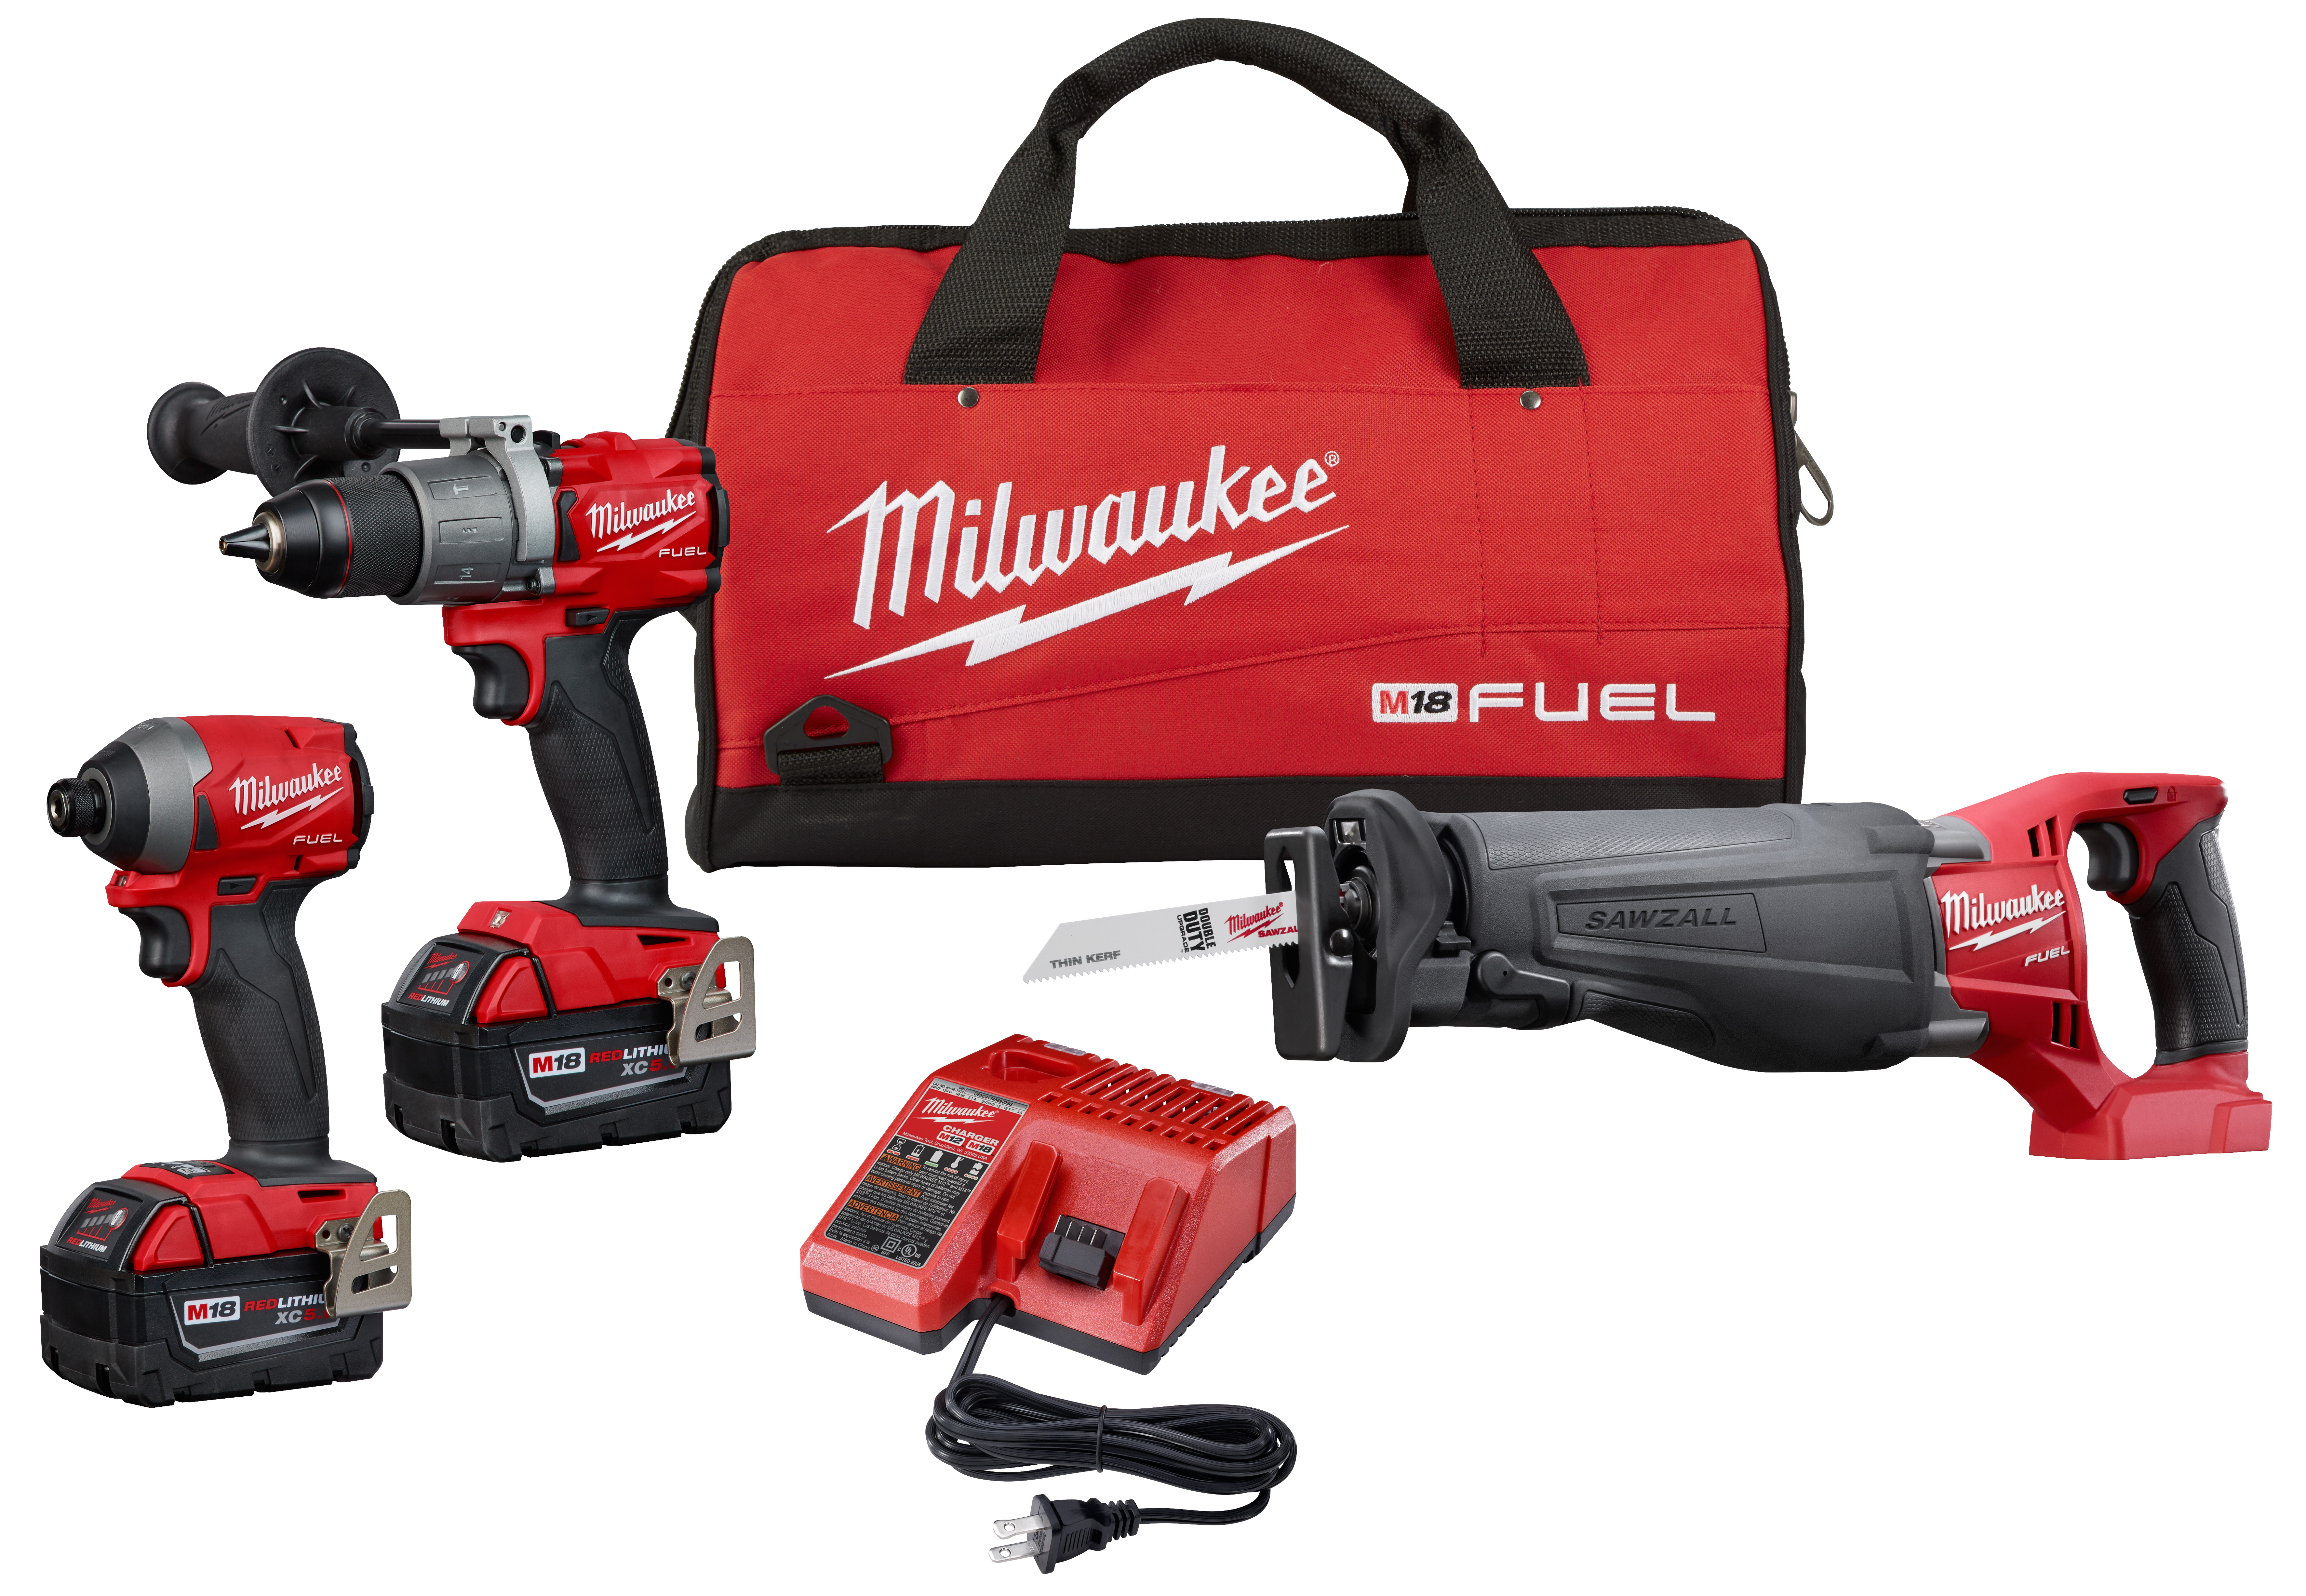 Milwaukee® M18™ 2997-23 3-Tool Cordless Combination Kit, Tools: Hammer Drill, Impact Driver, Reciprocating Saw, 18 VDC, 5 Ah Lithium-Ion REDLITHIUM™ Battery, D-Handle, Assorted Teeth